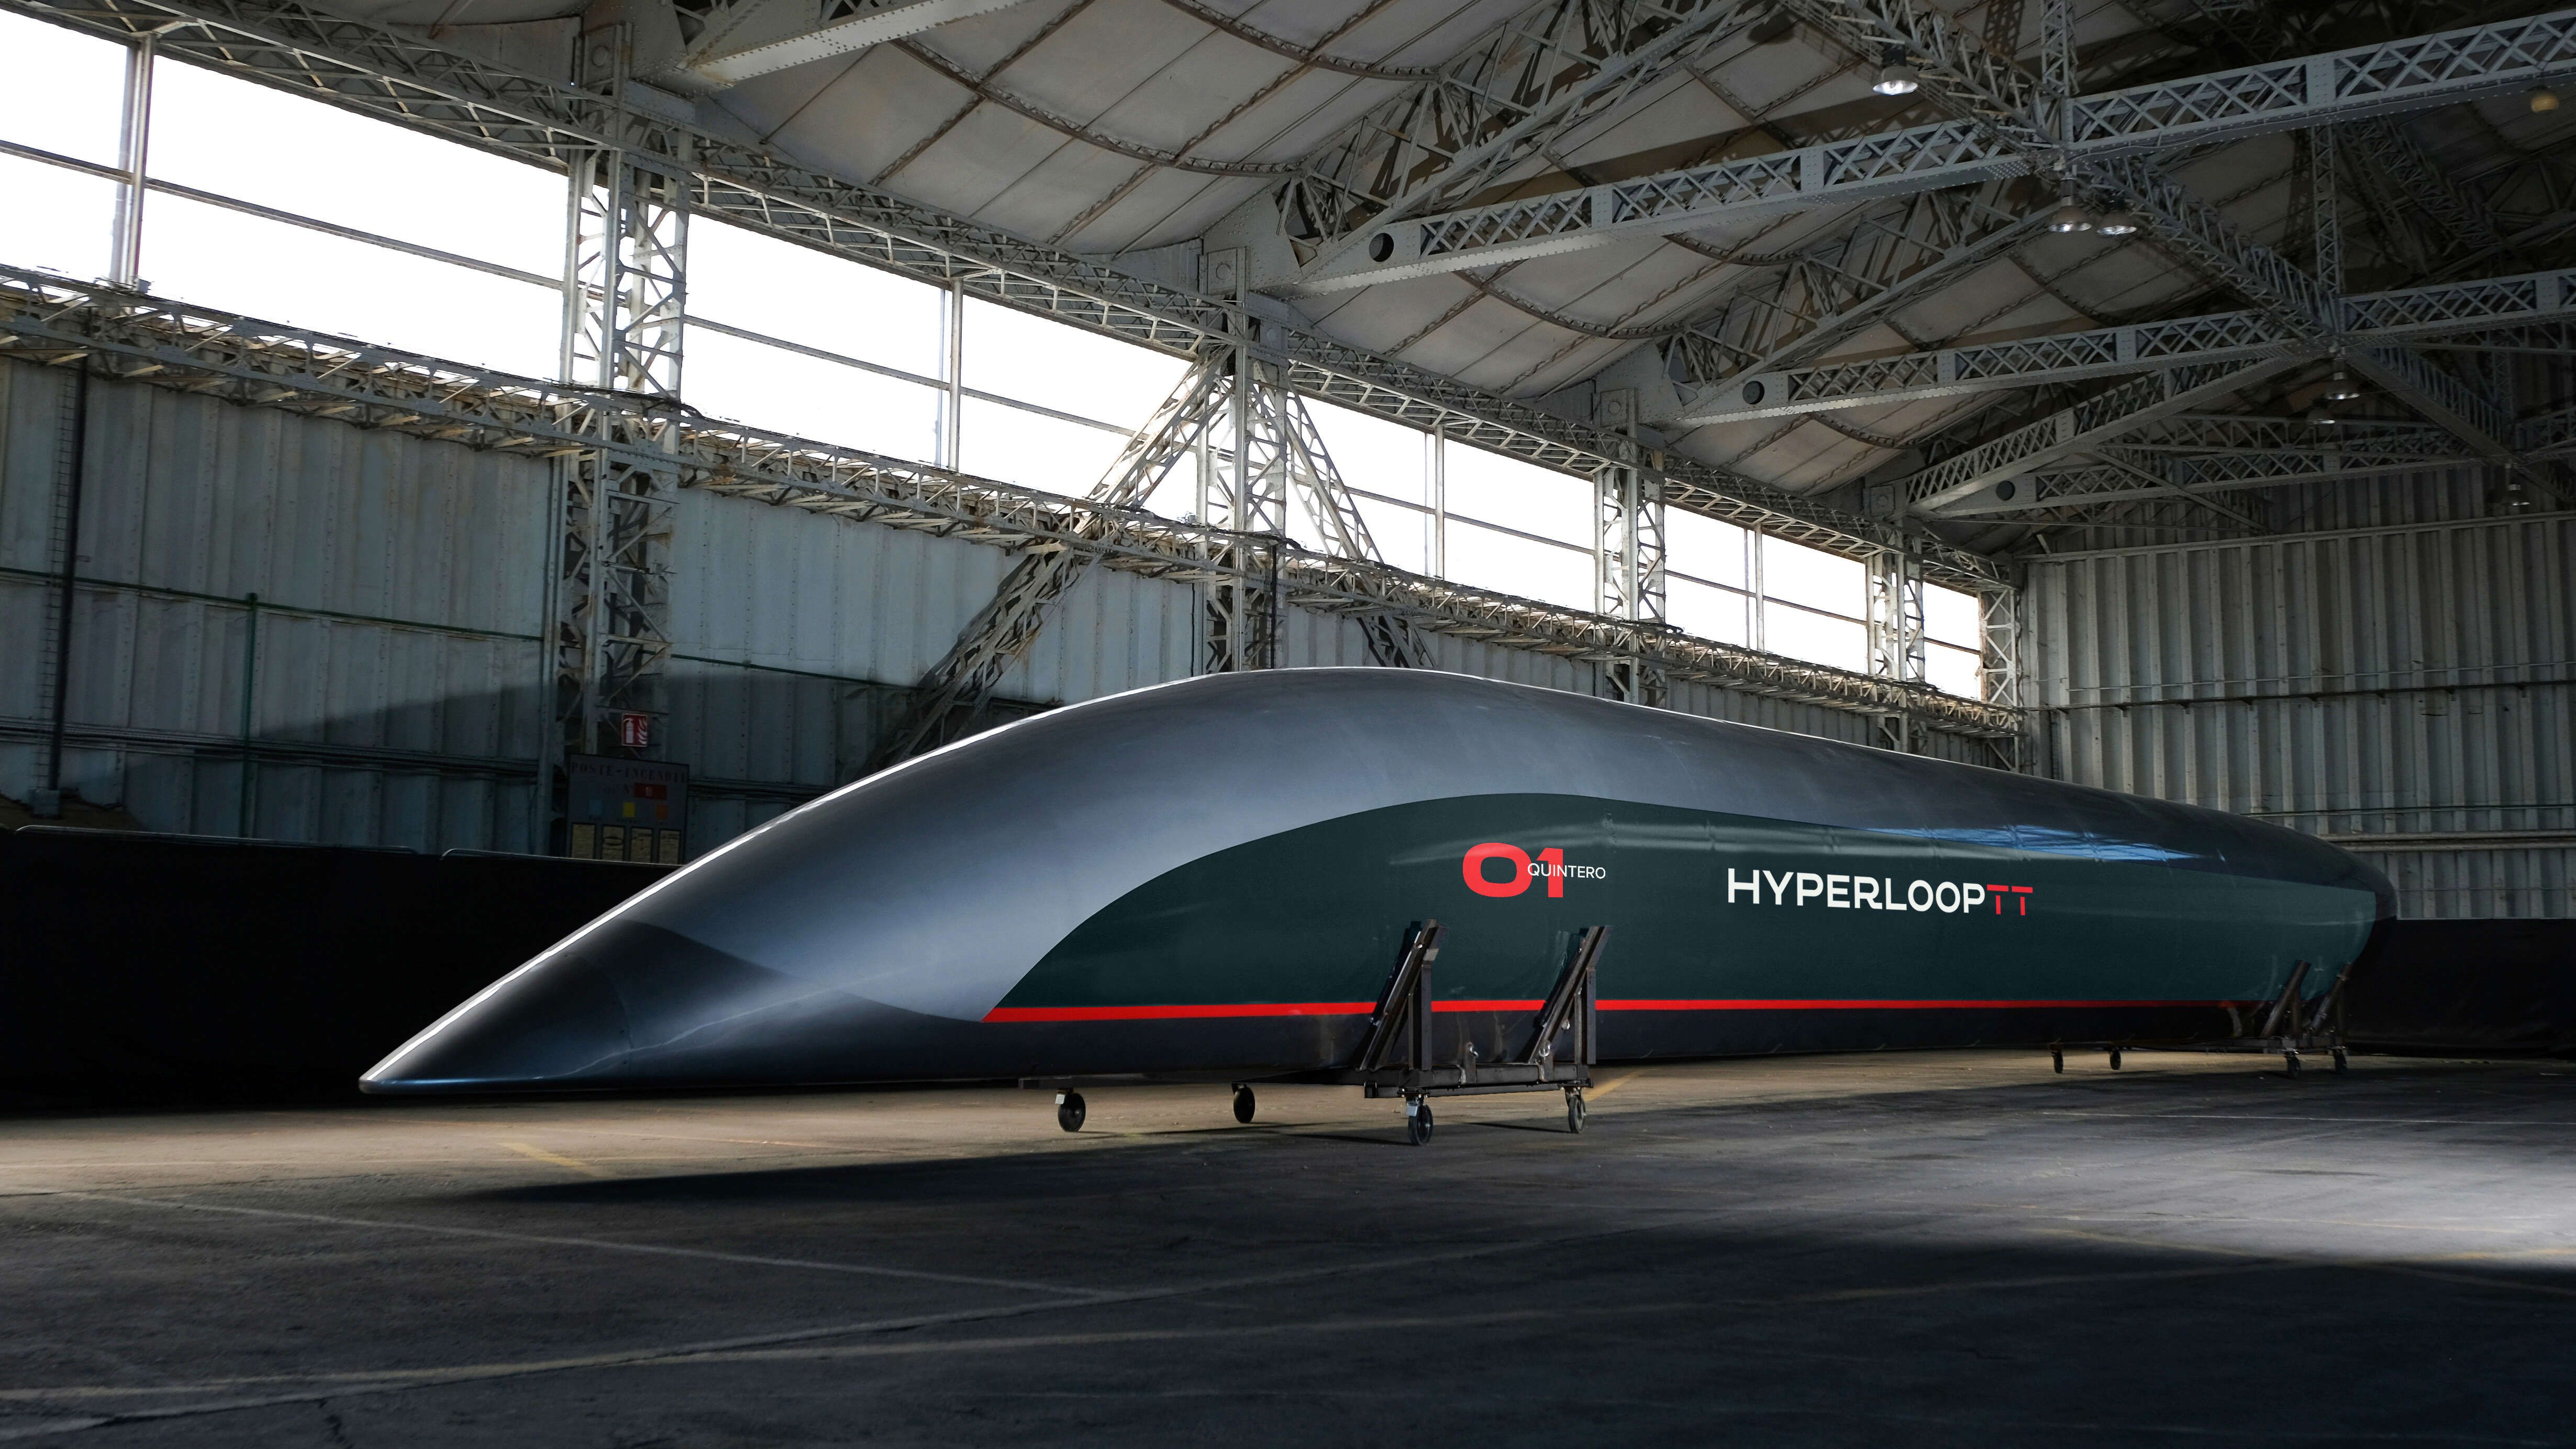 /musks-open-source-hyperloop-players-in-the-race-to-create-the-first-gn473tj5 feature image